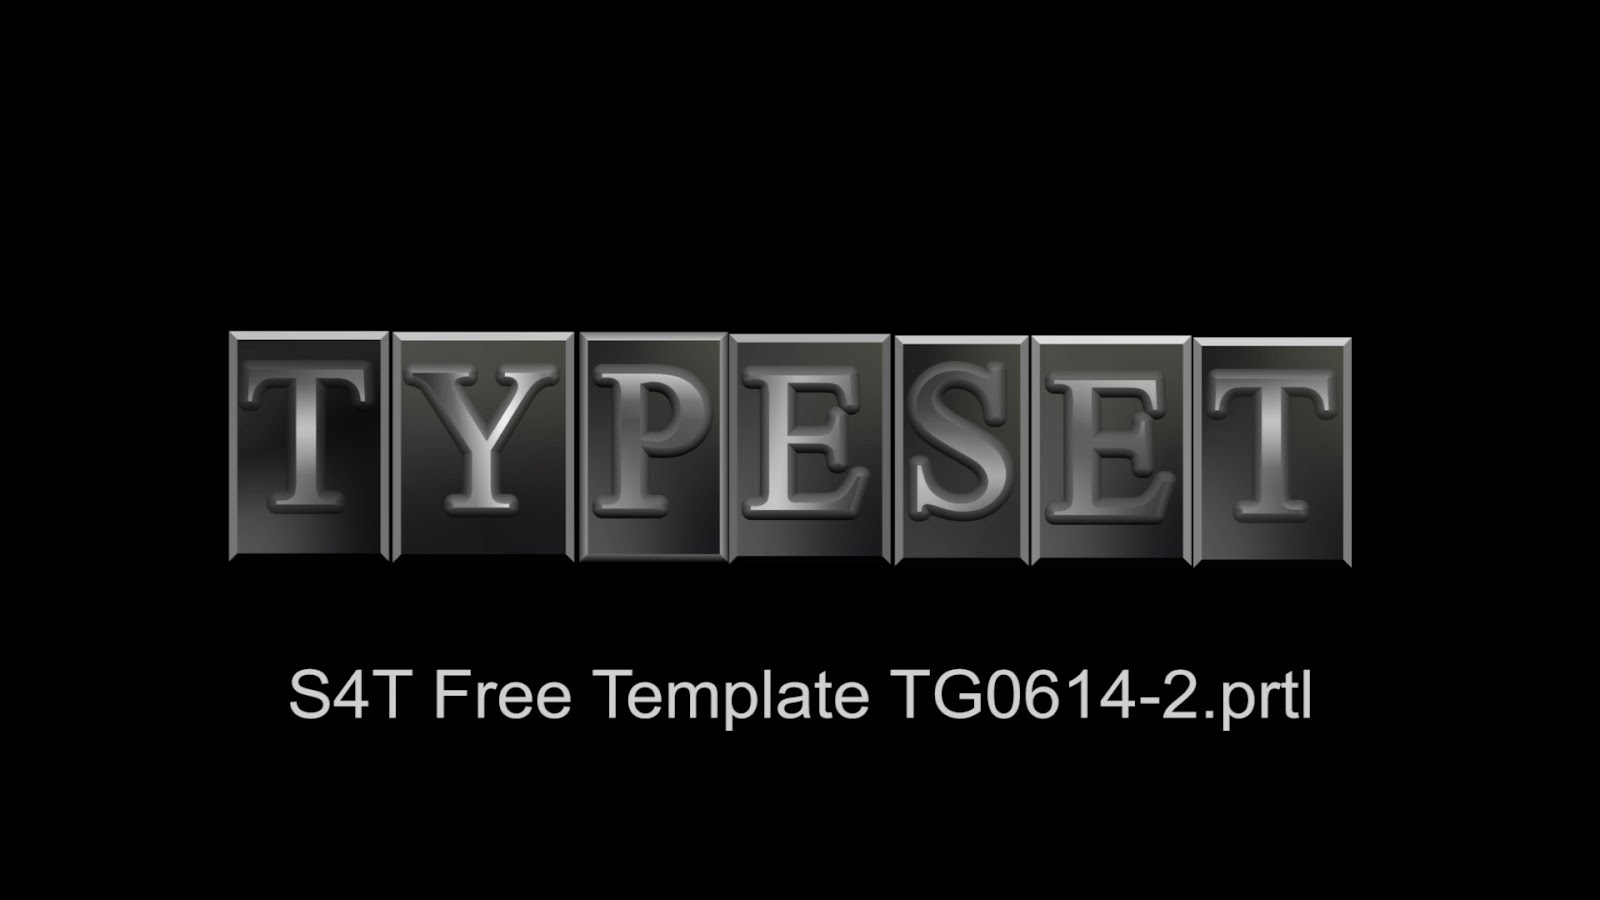 Style4type free s4t premiere pro title template movable type for Premiere pro title templates free